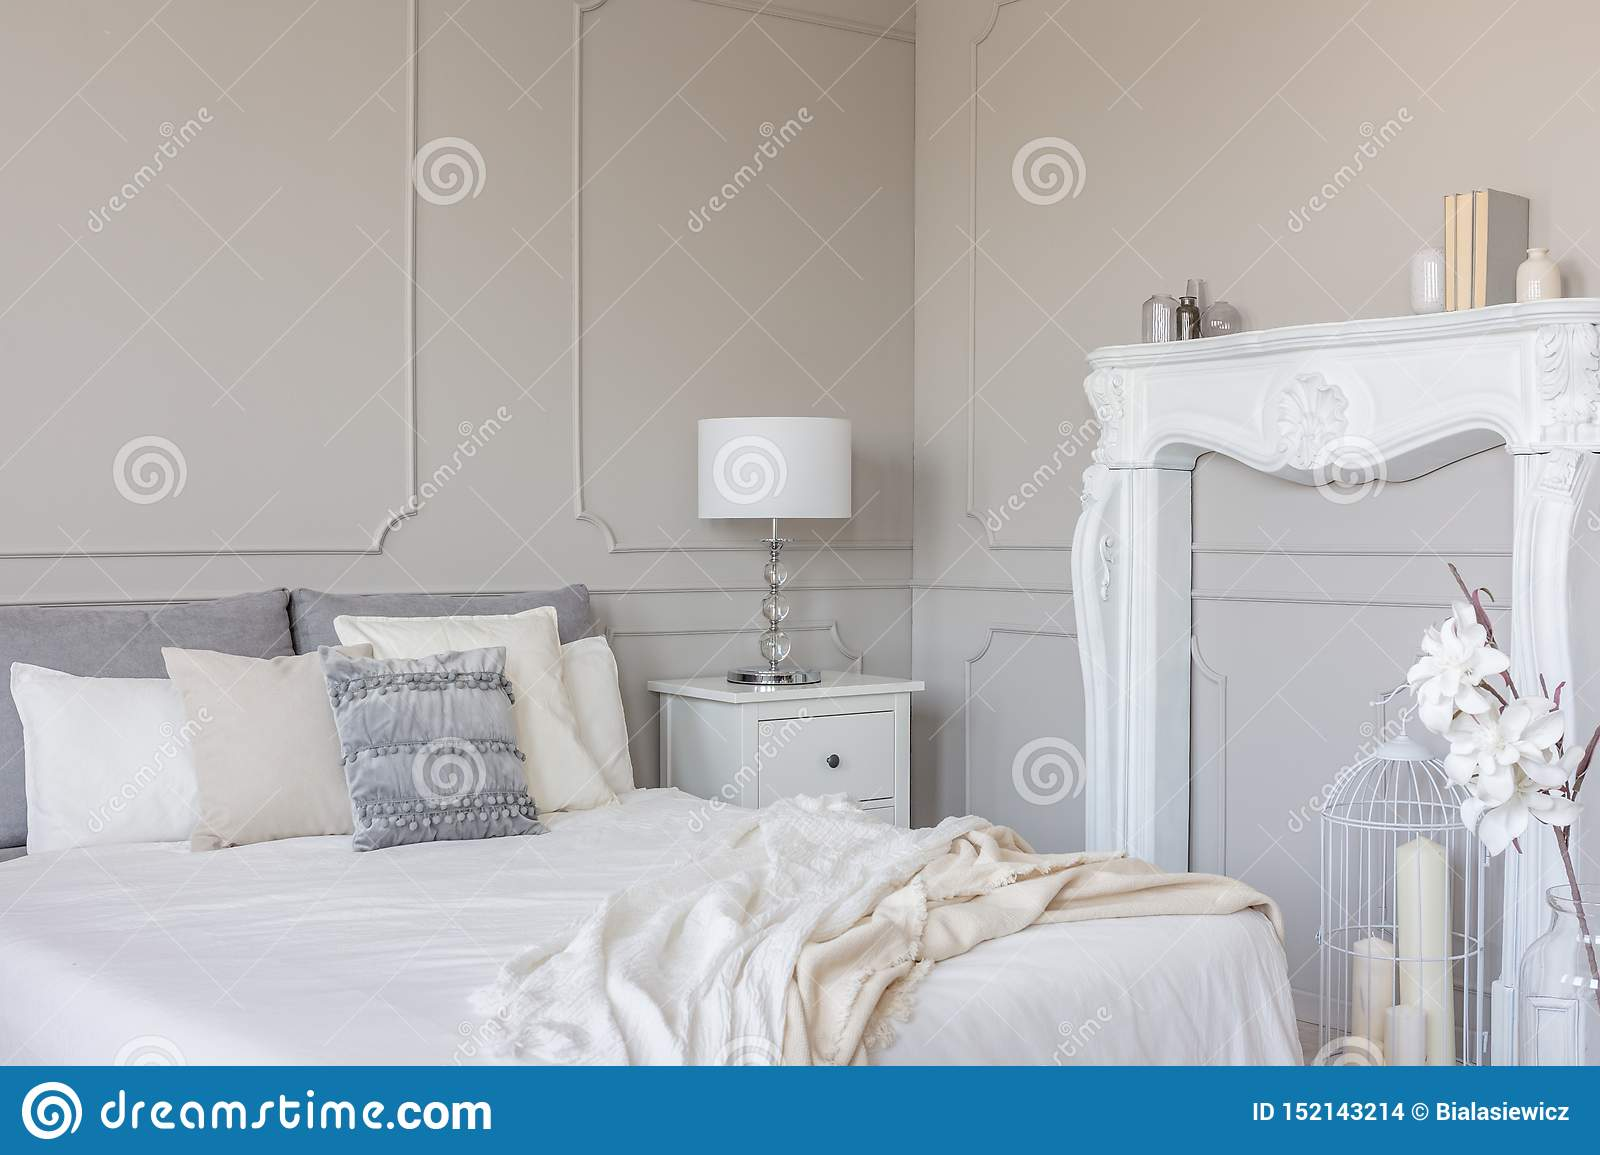 White Wooden Fireplace Portal In Beautiful Bedroom Interior With White Sheets On King Size Bed Stock Photo Image Of Duvet Estate 152143214